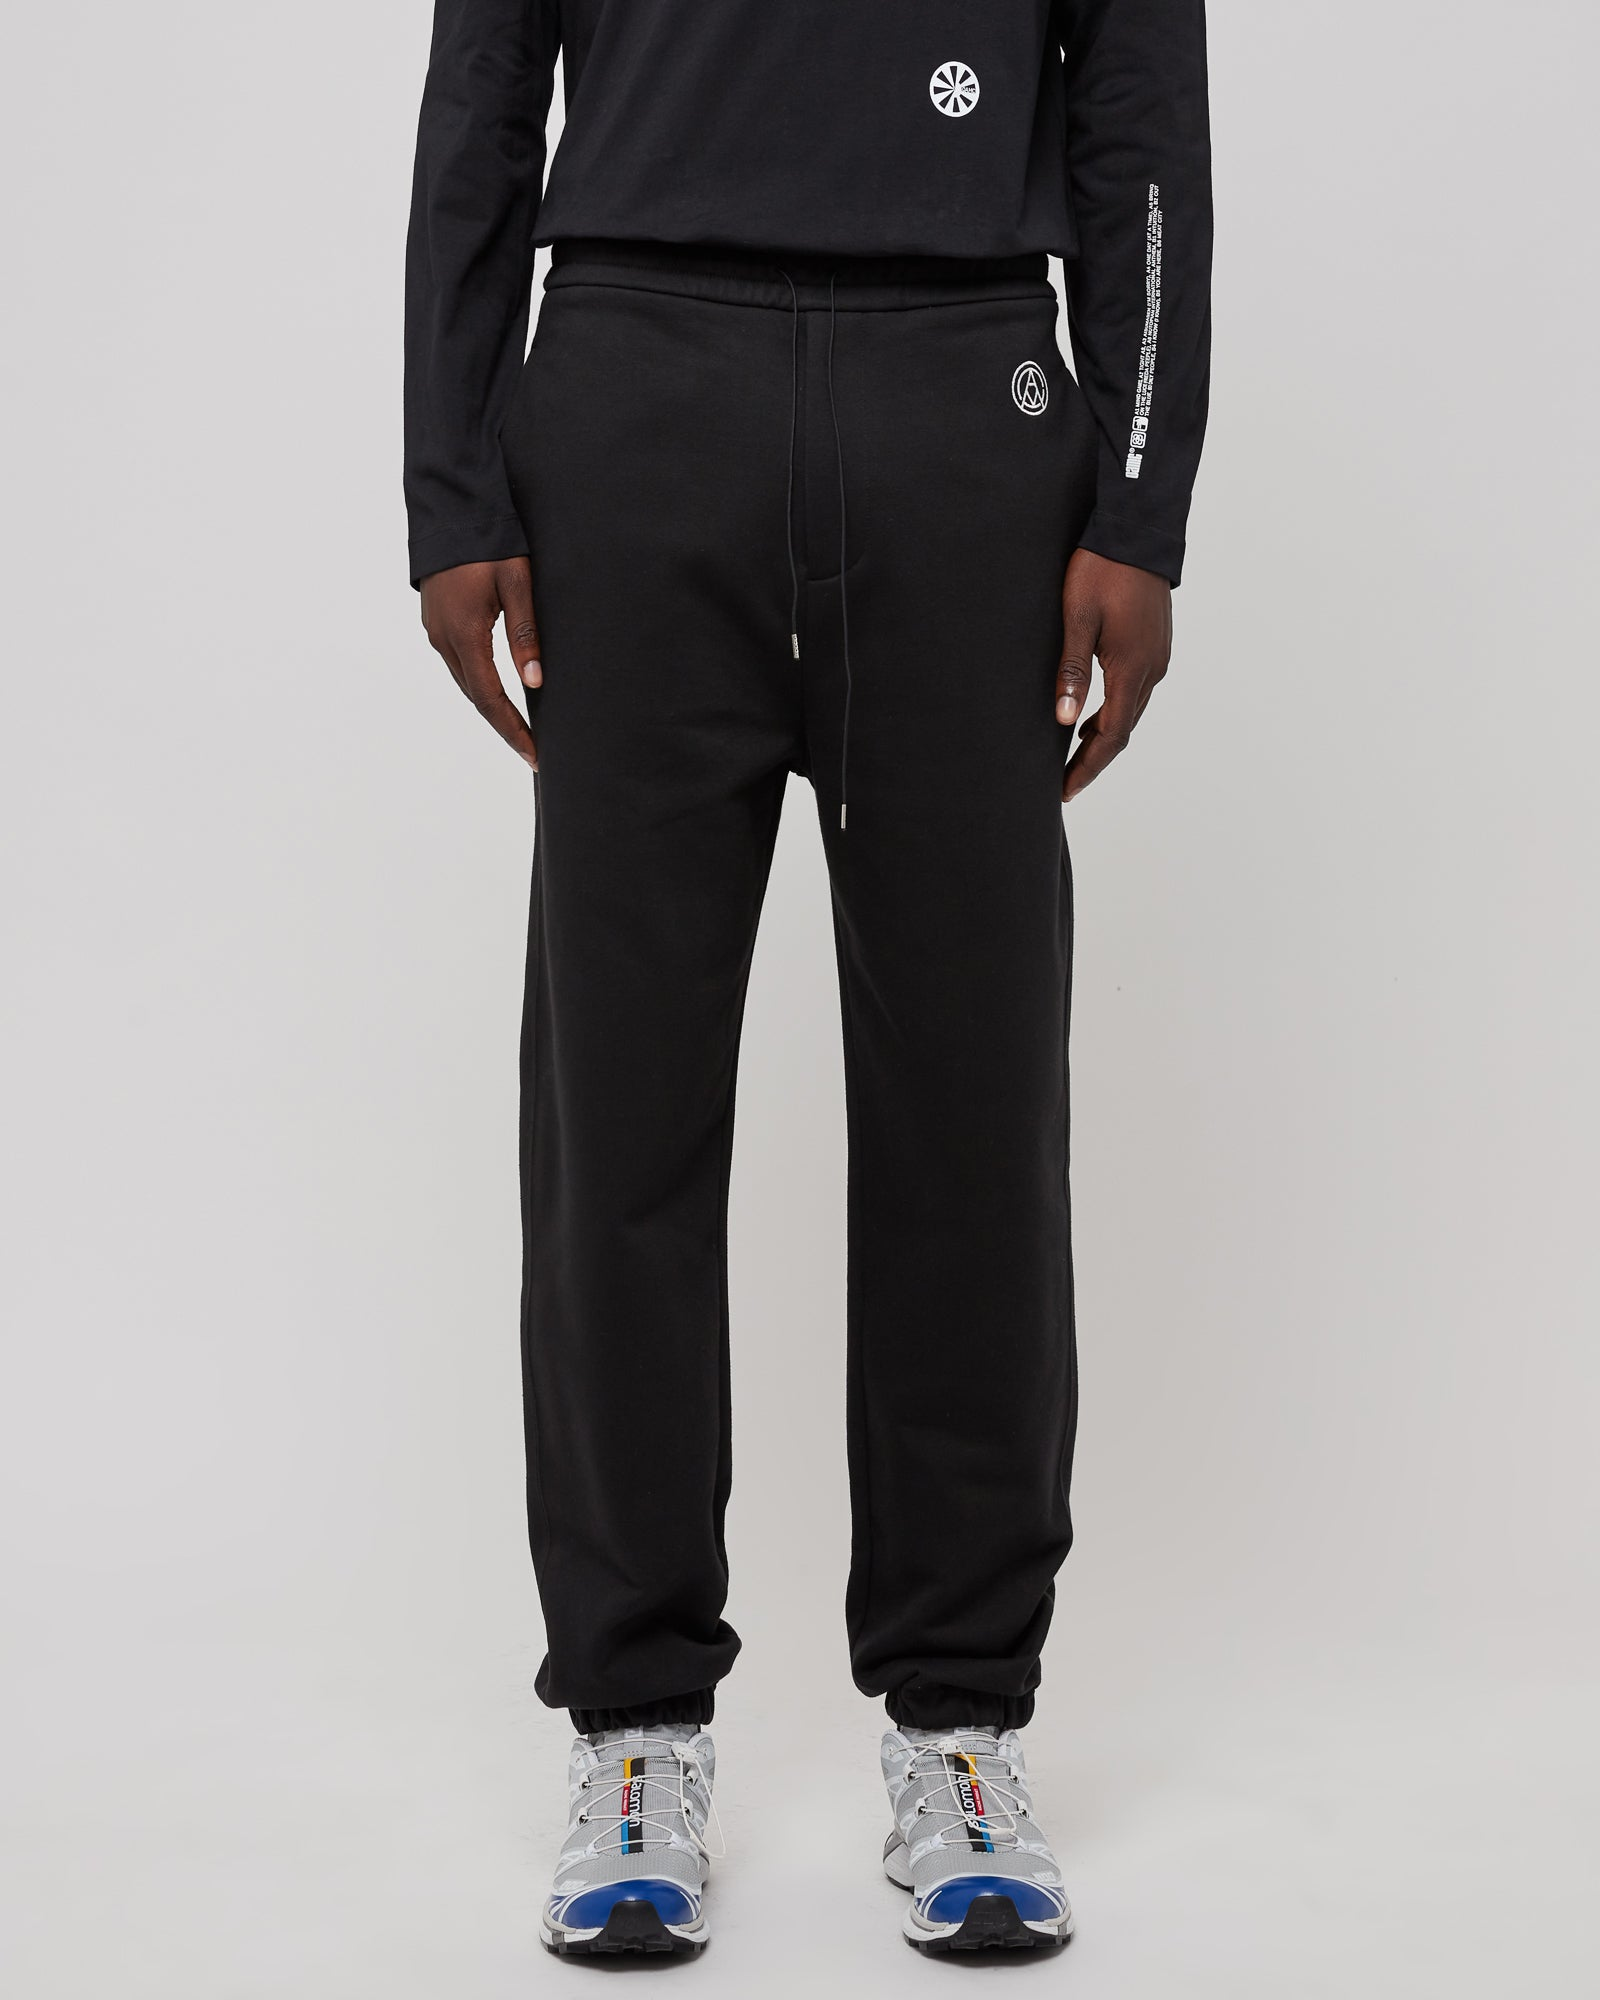 Mark Sweatpants in Black